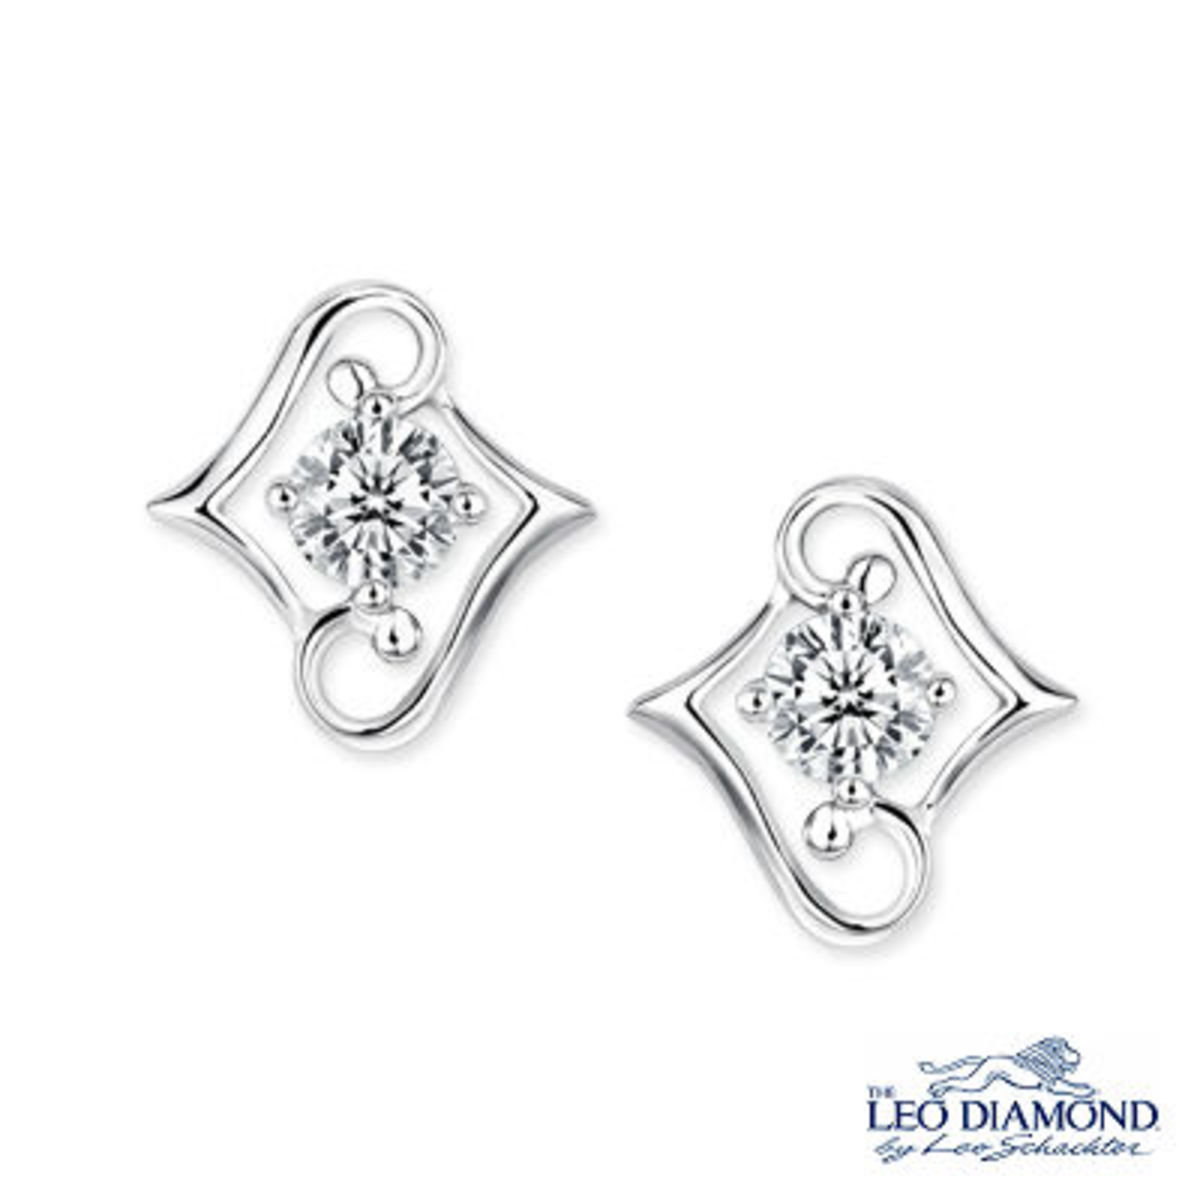 Beloved Collection - 18K/750 White Gold Diamond Solitaire Double L-Shaped Earrings